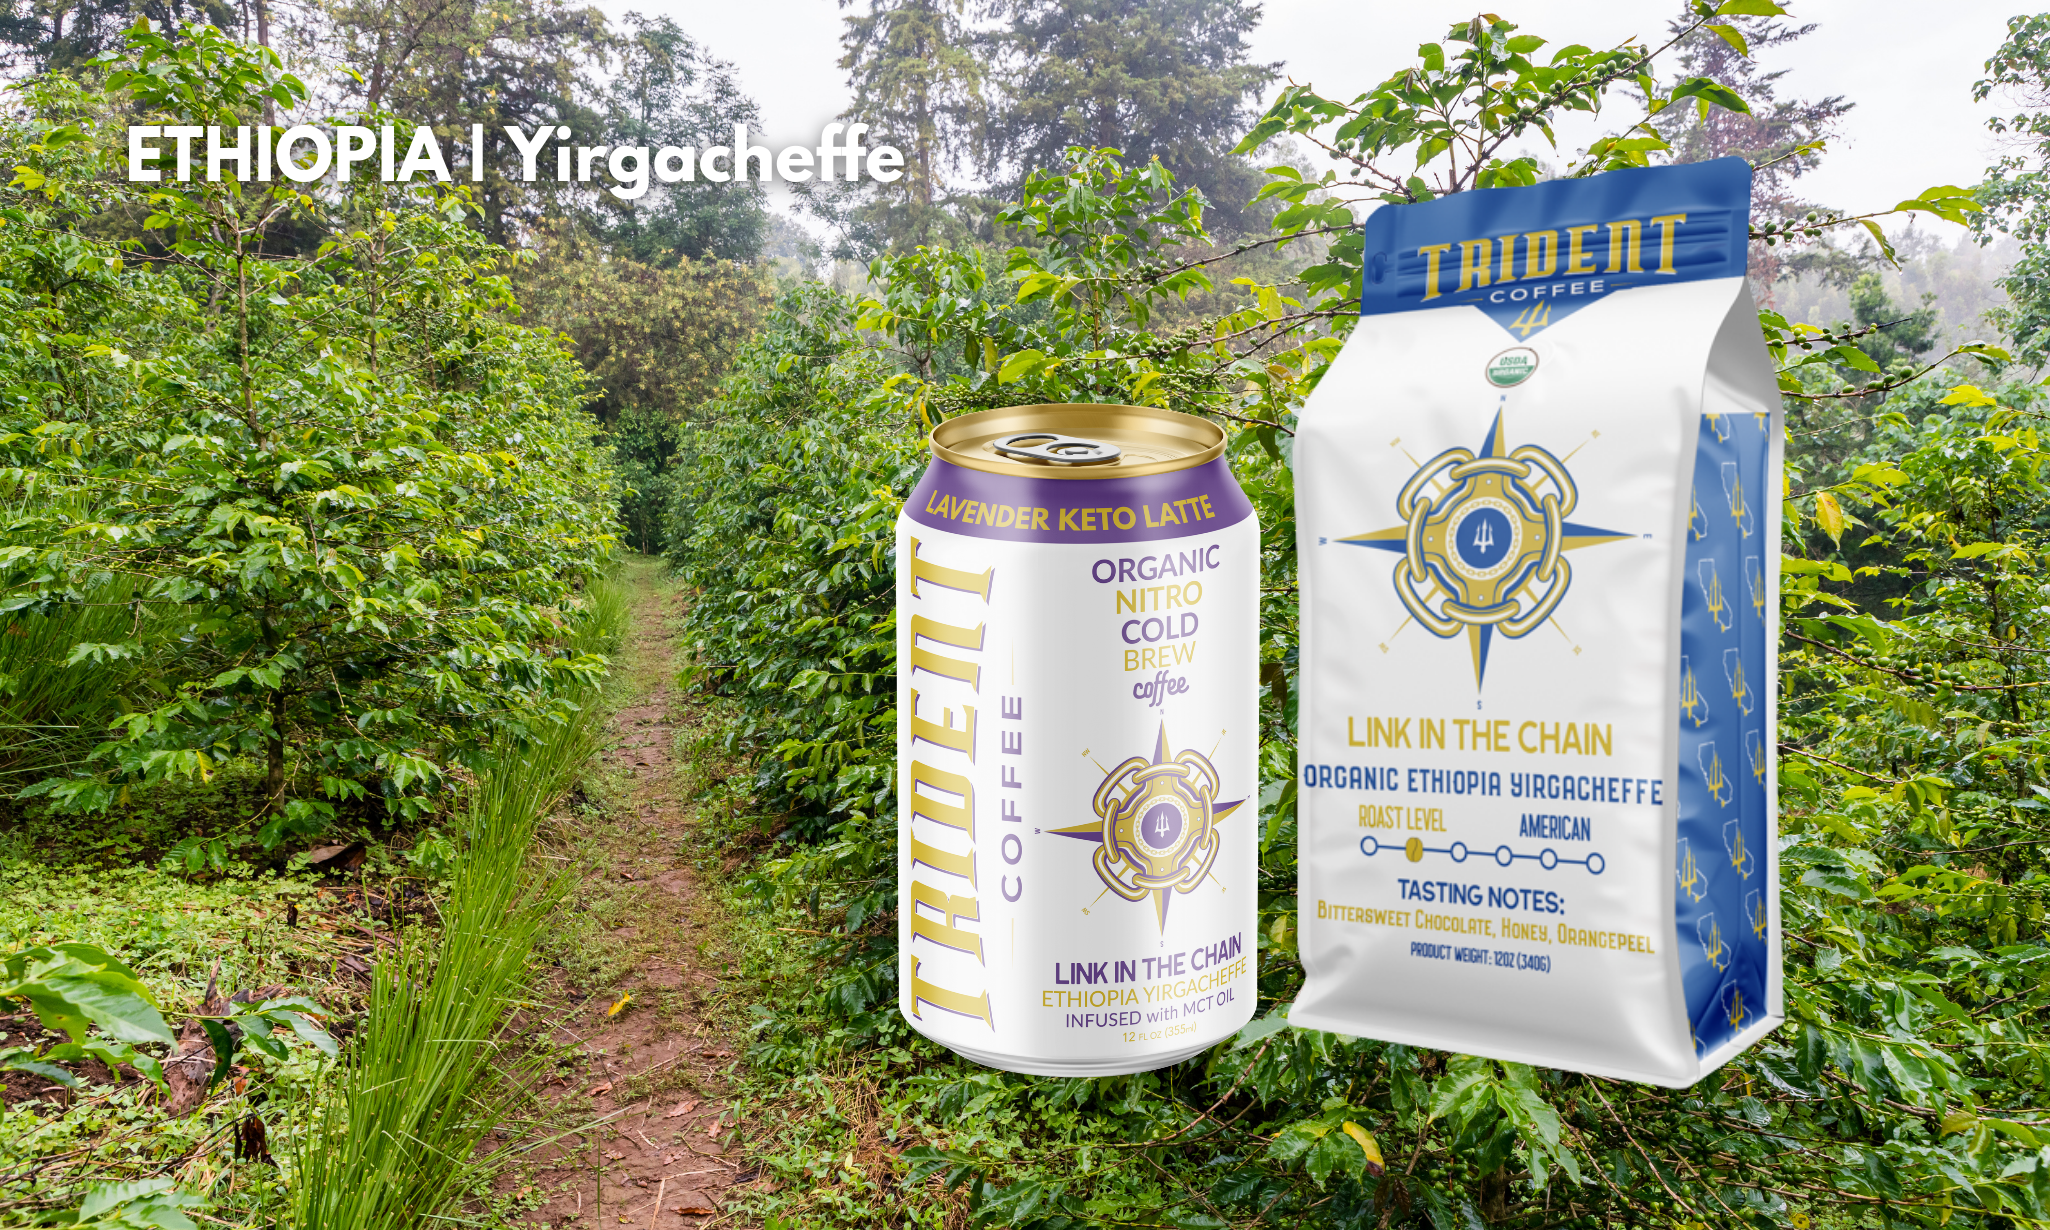 link in the chain - trident coffee - roasted coffee - cold brew - Ethiopia